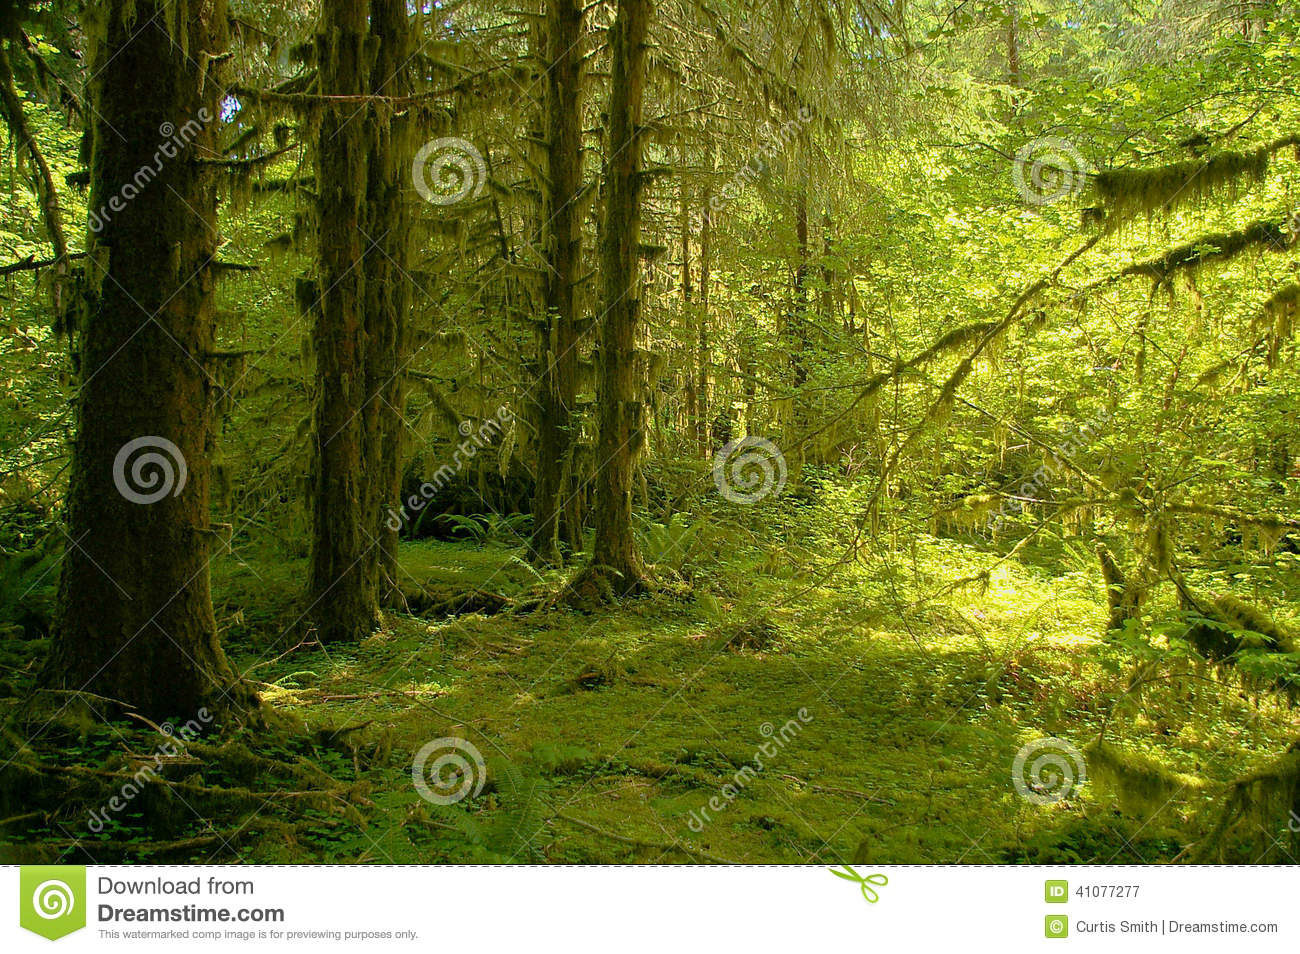 Hoh River Rainforest at Olympic National Park